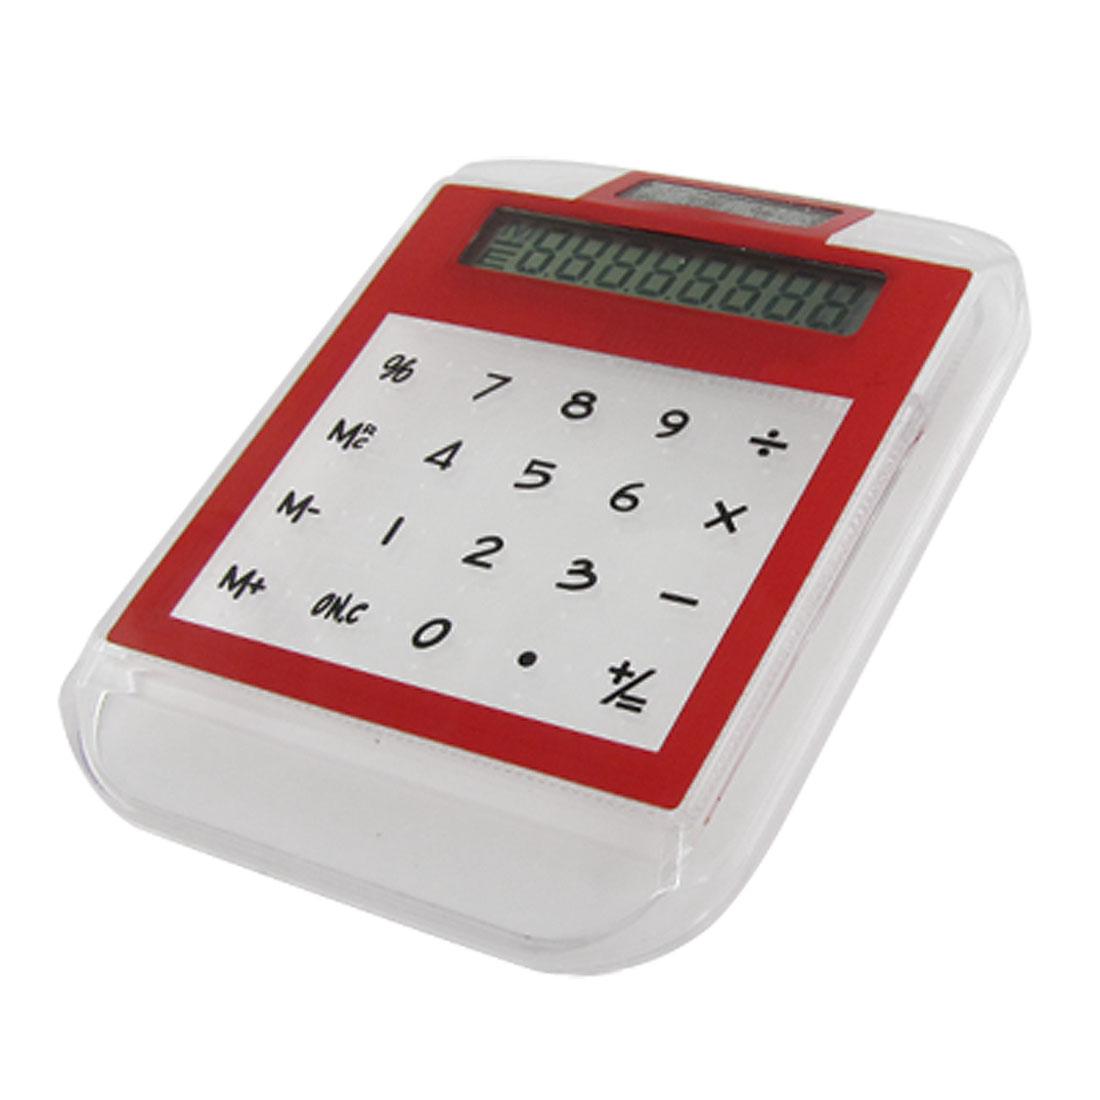 Portable Flat Touch Sensor Red Clear Plastic Calculator